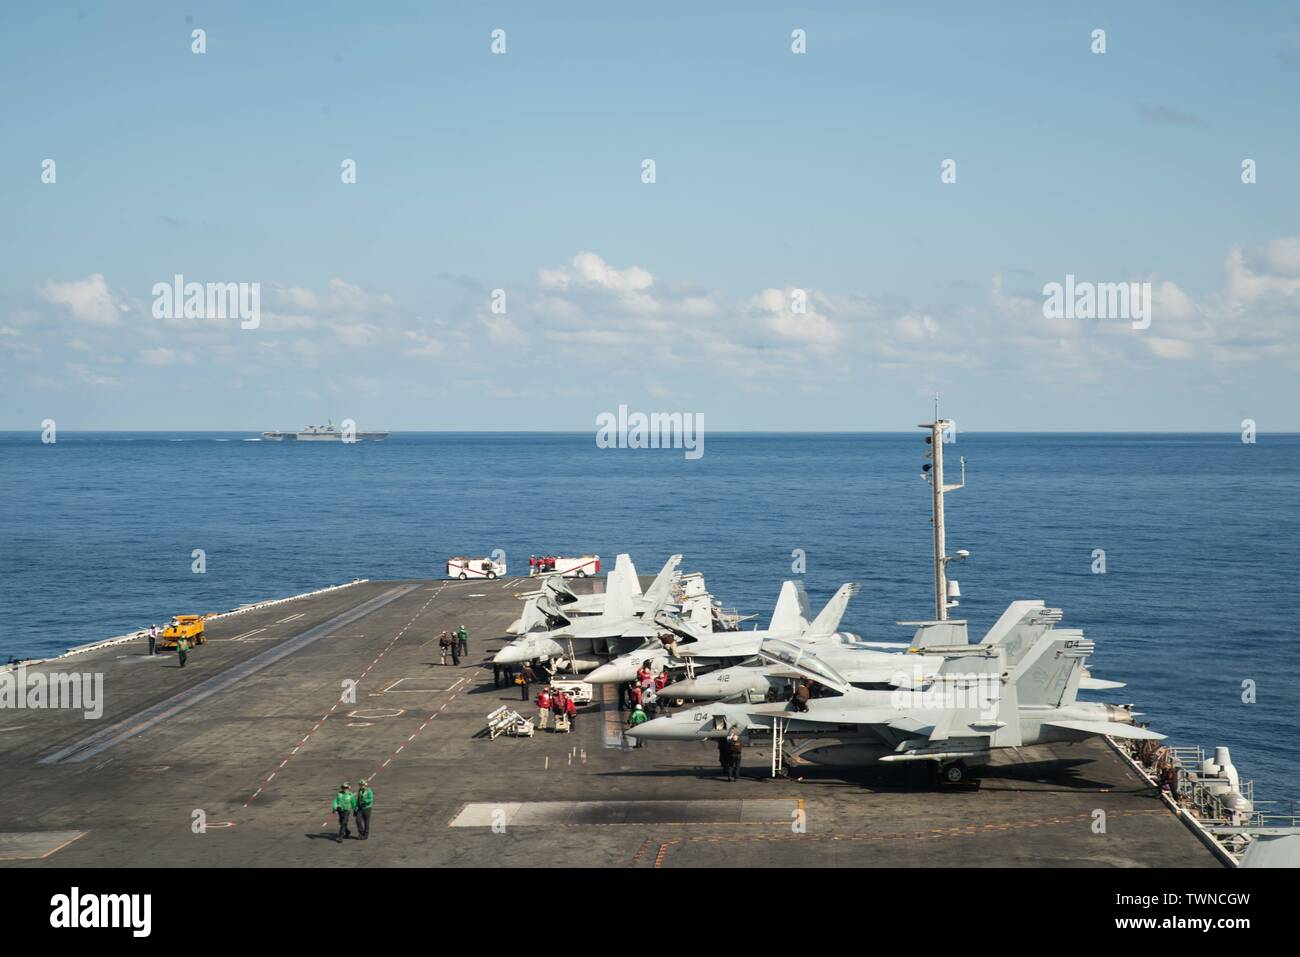 190619-N-JK118-1027 SOUTH CHINA SEA (June 19, 2019) Japan Maritime Self-Defense Force (JMSDF) ship JS Izumo (DH-183) sails in front of the Navy's forward-deployed aircraft carrier USS Ronald Reagan (CVN 76) during Reagan's flight operations. Ronald Reagan, the flagship of Carrier Strike Group 5, provides a combat-ready force that protects and defends the collective maritime interests of its allies and partners in the Indo-Pacific region. (U.S. Navy photo by Mass Communication Specialist Seaman Thomas Leishman) - Stock Image